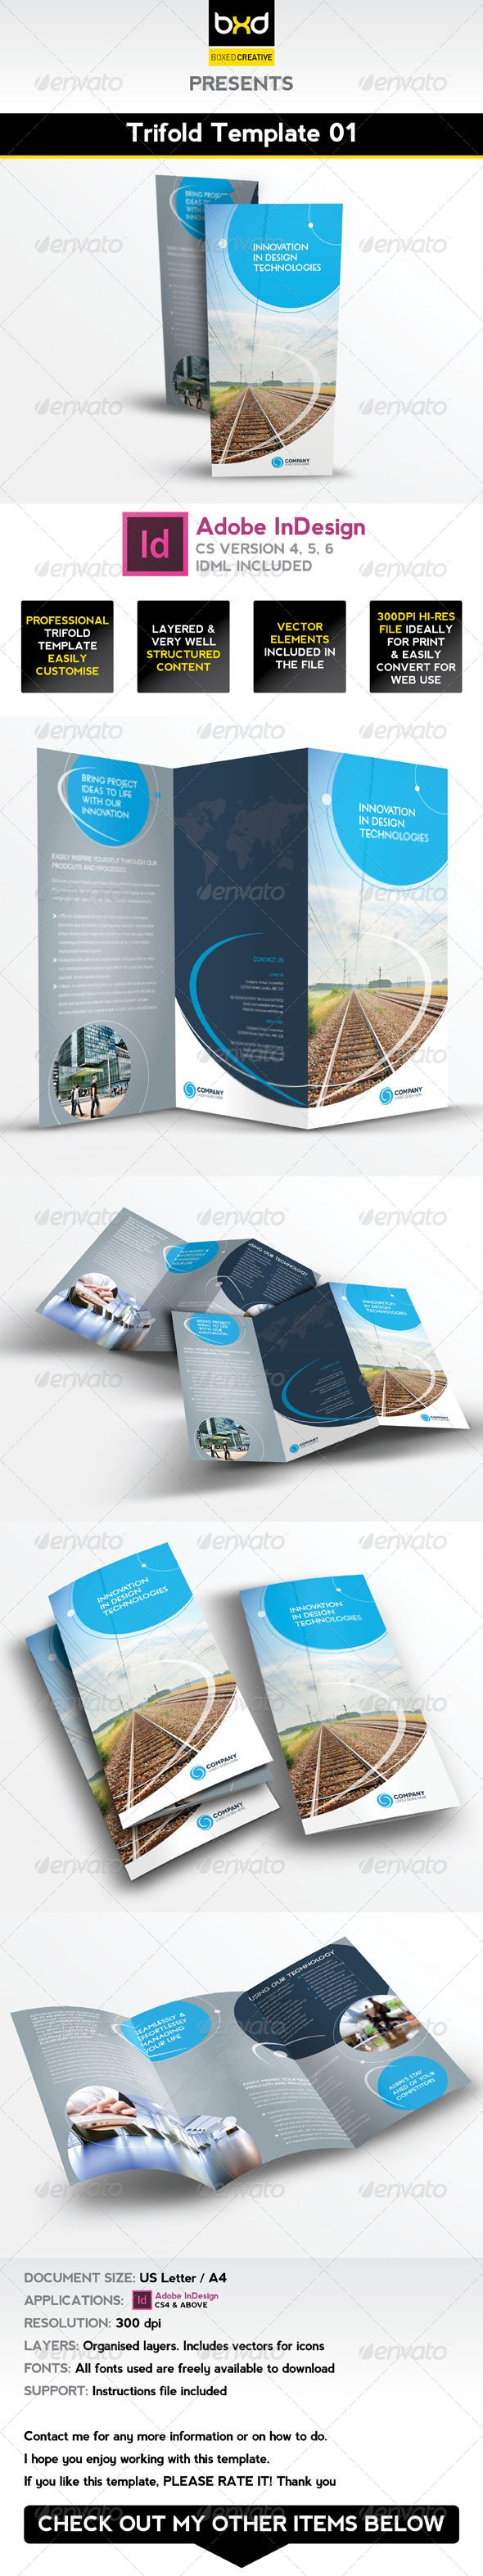 Trifold Brochure Template 01 - InDesign Layout | Herramientas